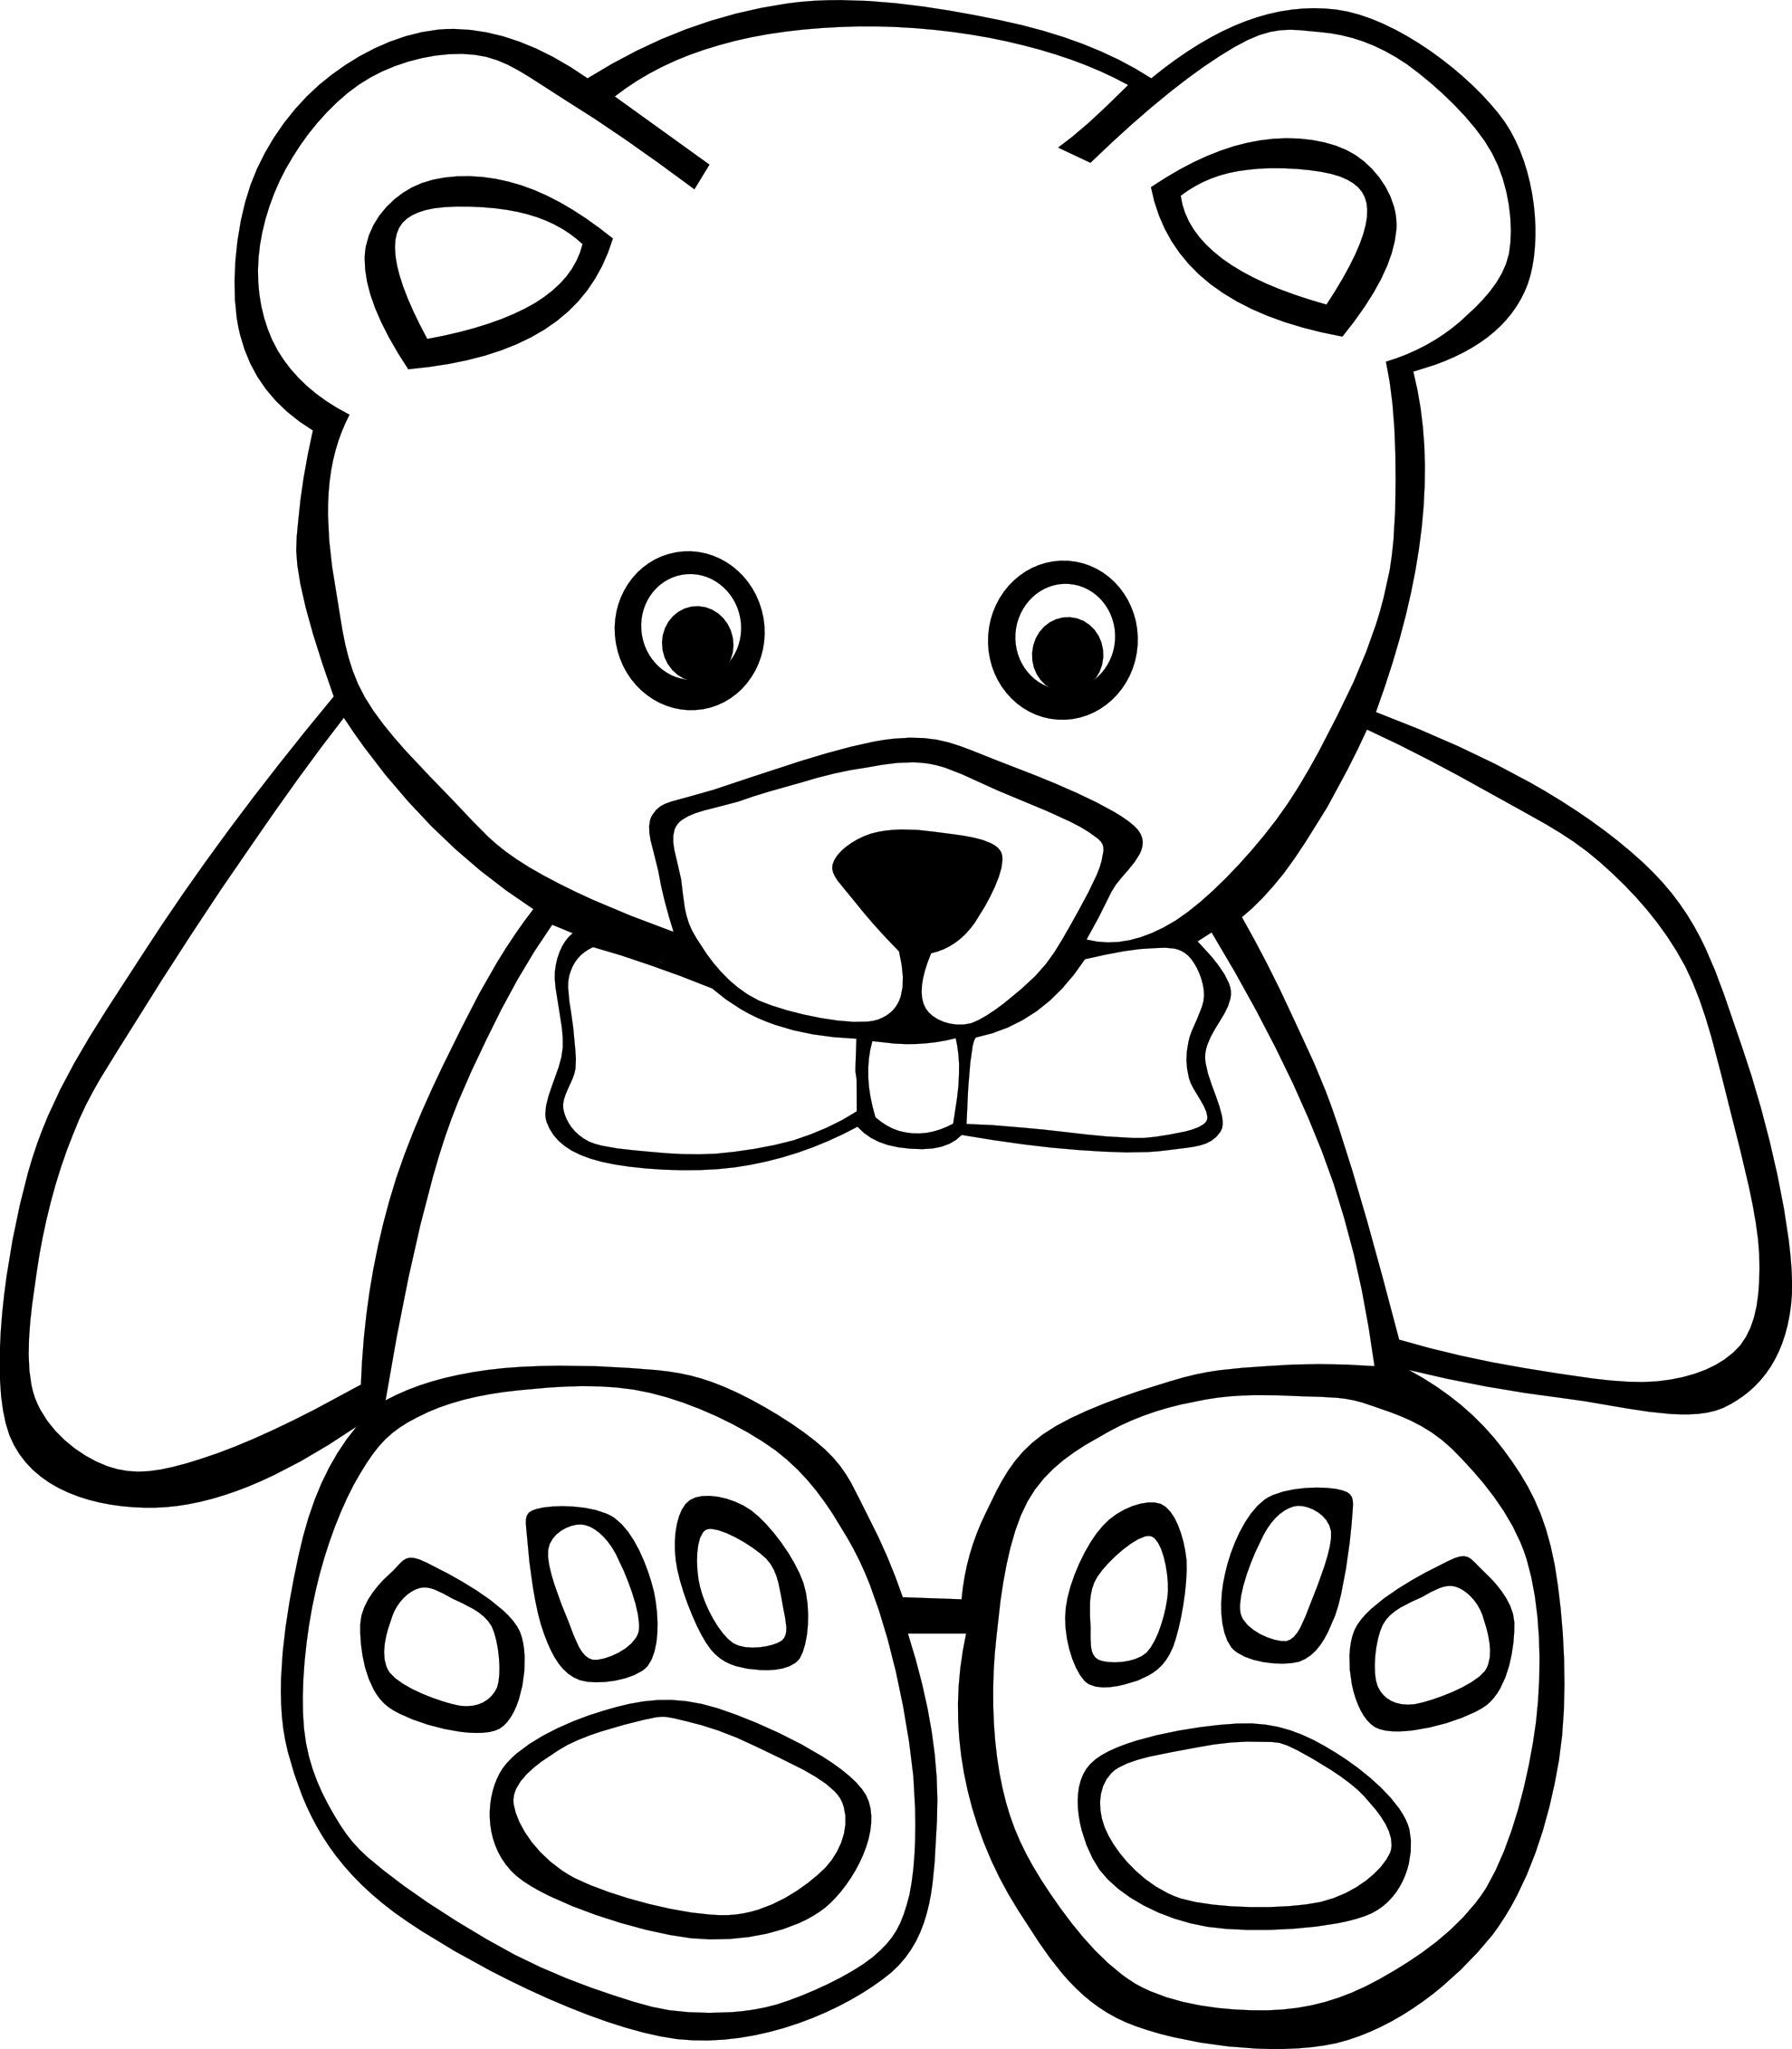 Languages Free Printable Teddy Bear Coloring Pages For Kids